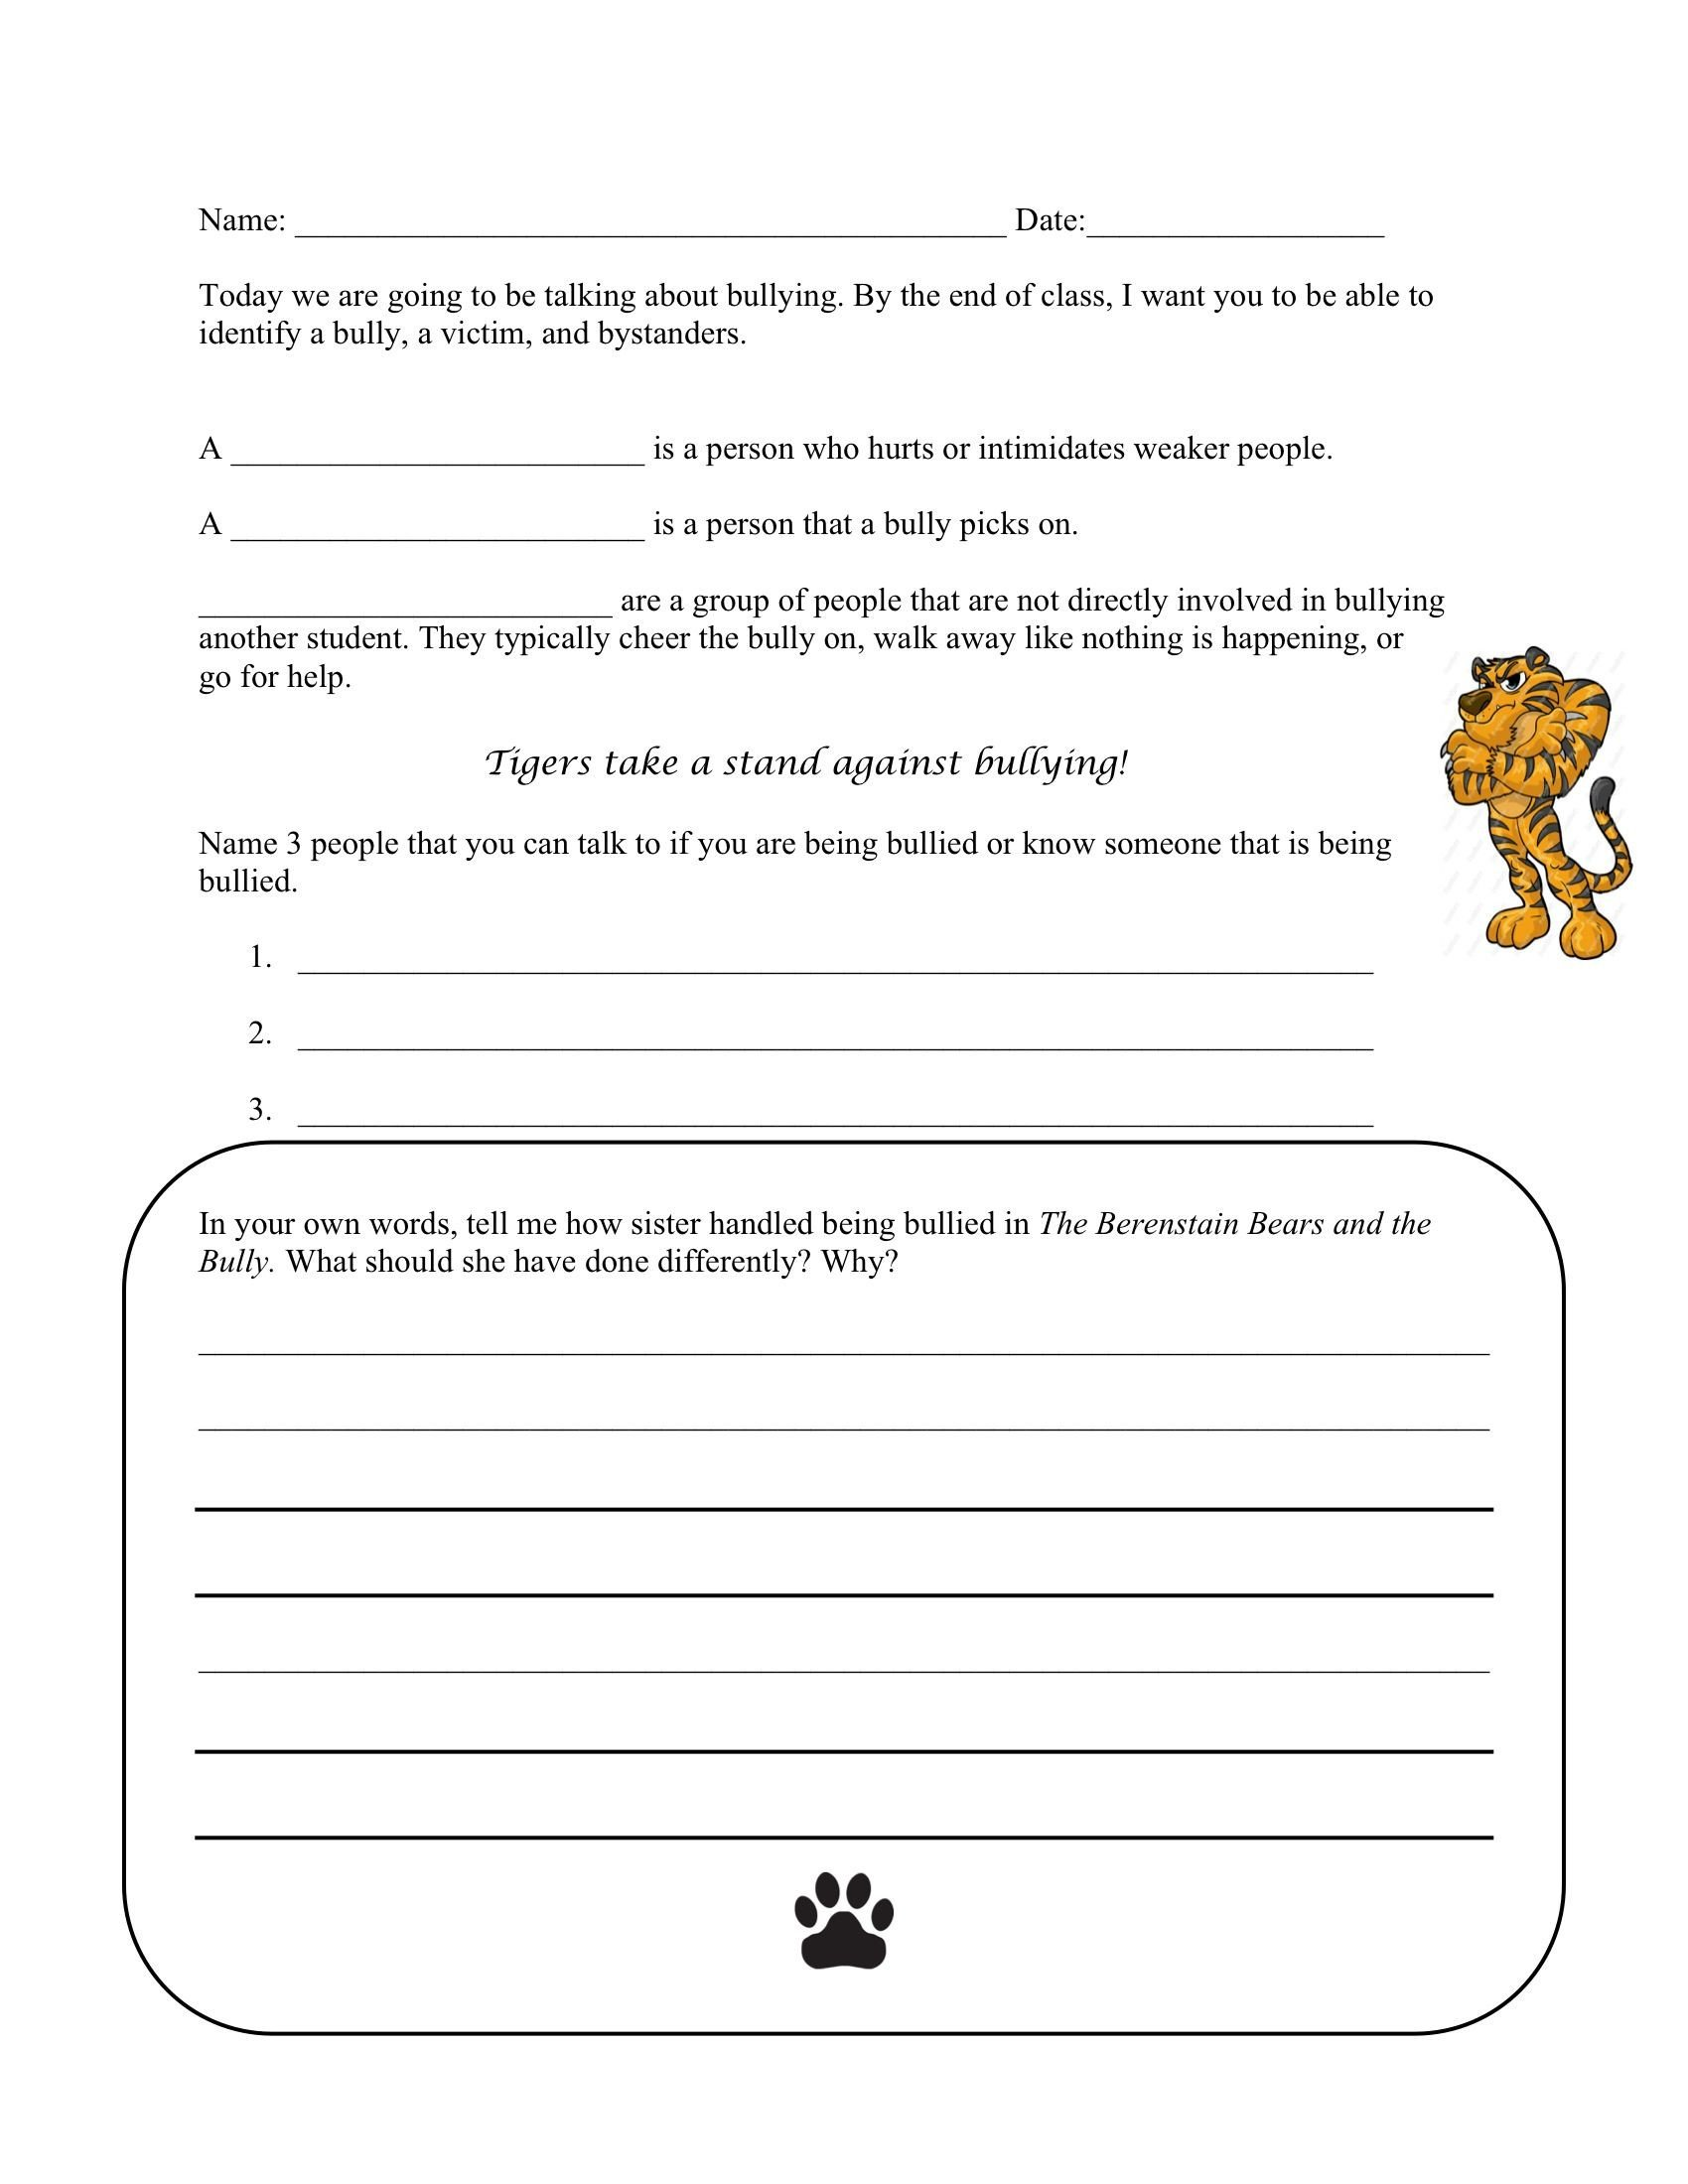 Bullying Worksheet to go along with The Berenstain Bears and